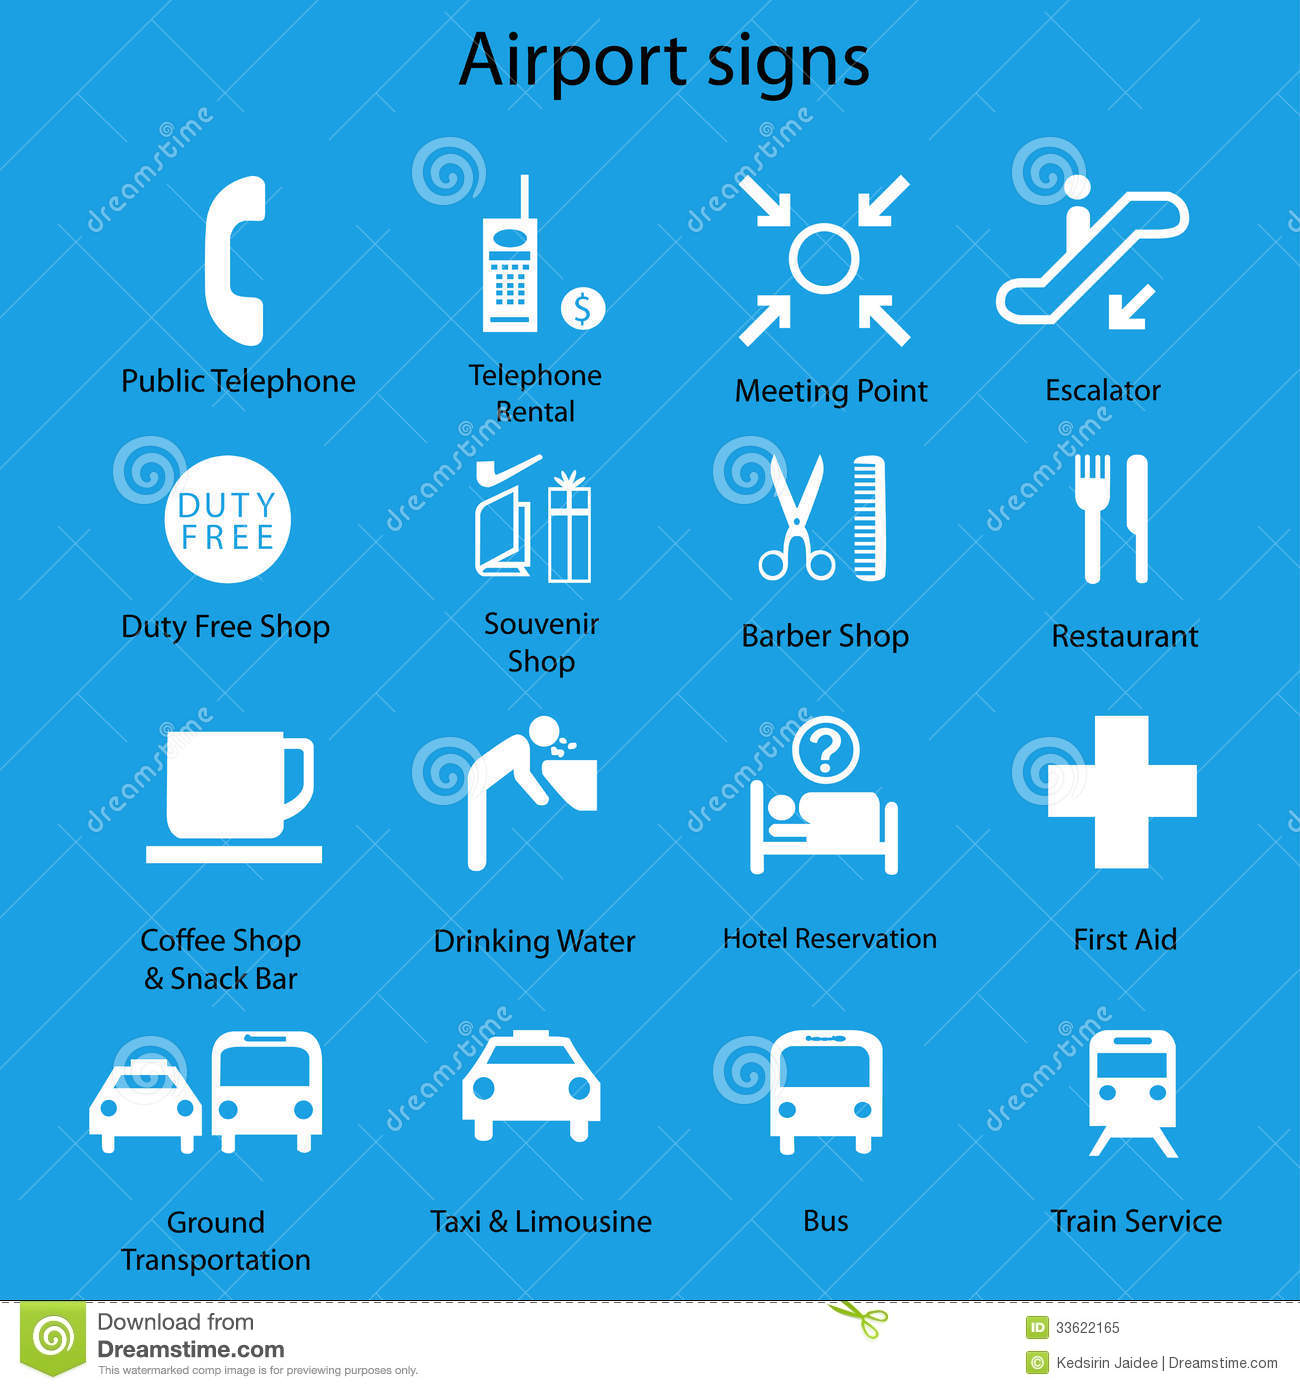 Set Of Airport Signs And Symbols On Blue Royalty Free